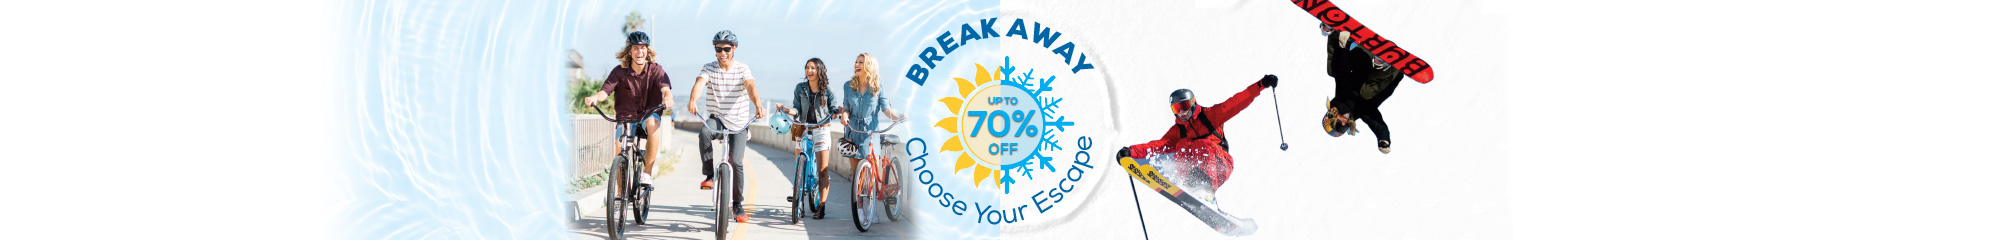 Break Away Choose your escape. Up to 70% Off